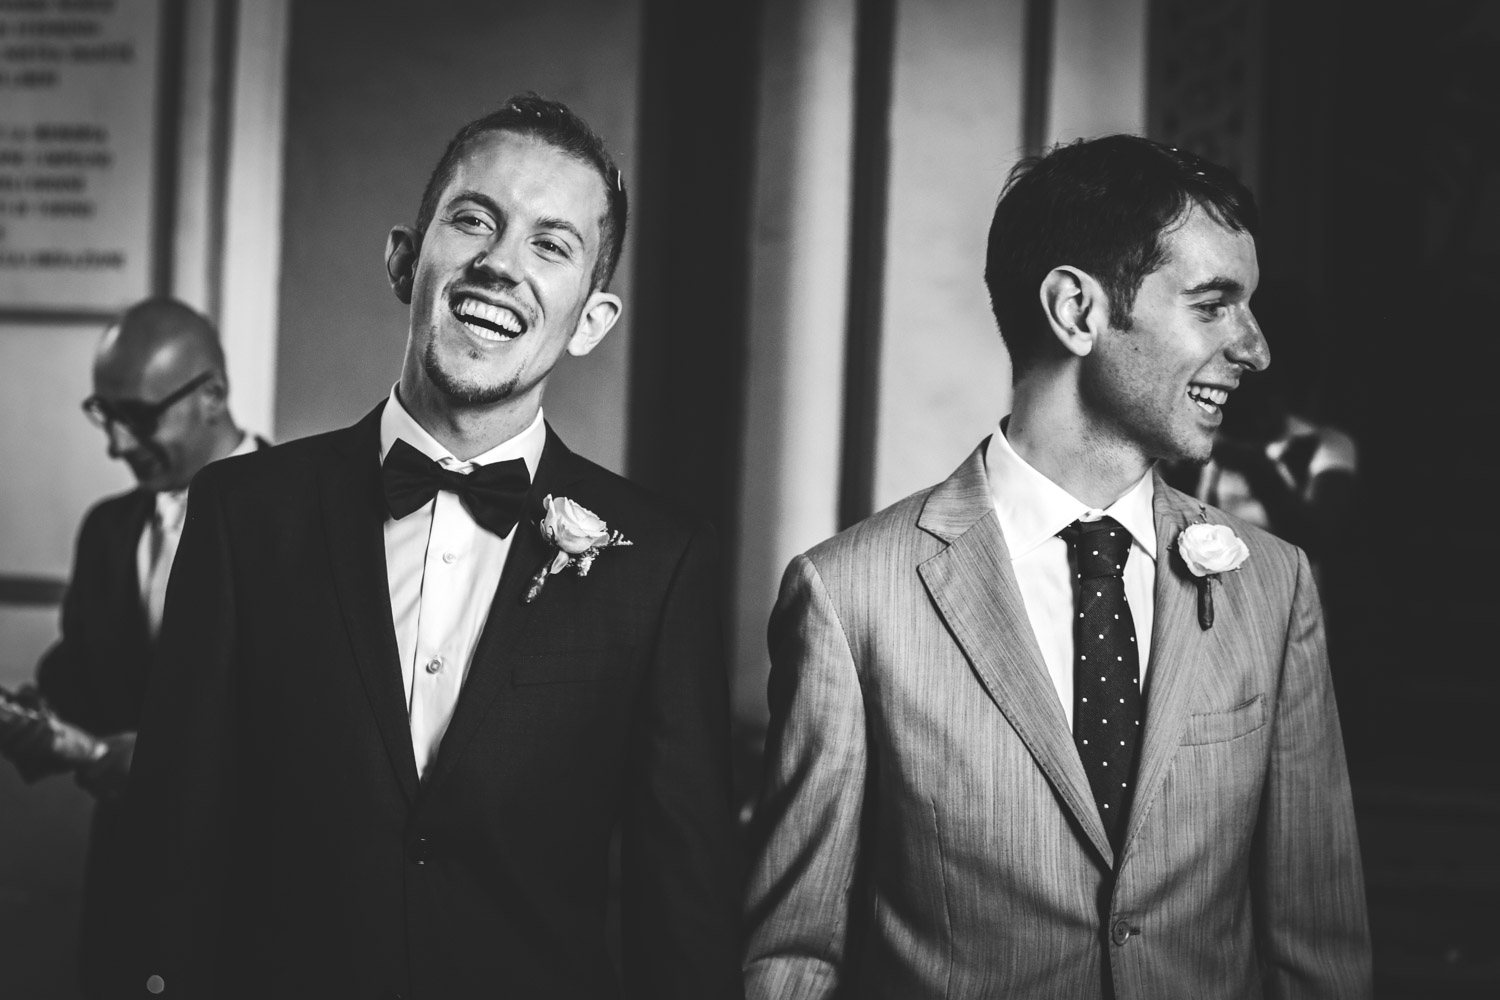 monica-sica_photography_trattoria-revelli_wedding-gay_torino_day_37